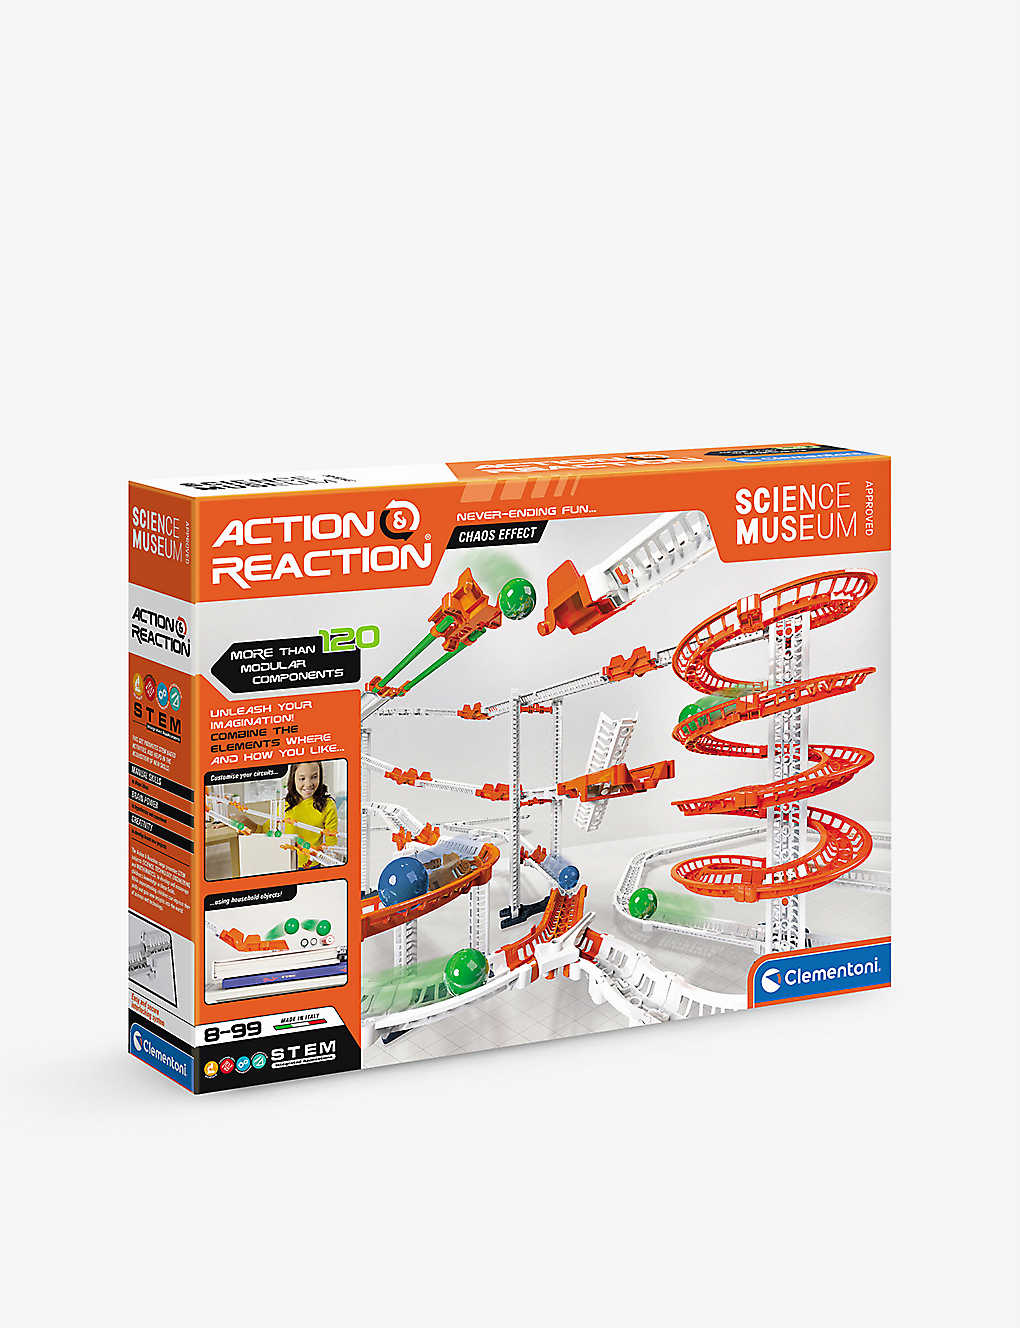 SCIENCE MUSEUM: Action & Reaction Chaos Effect science kit